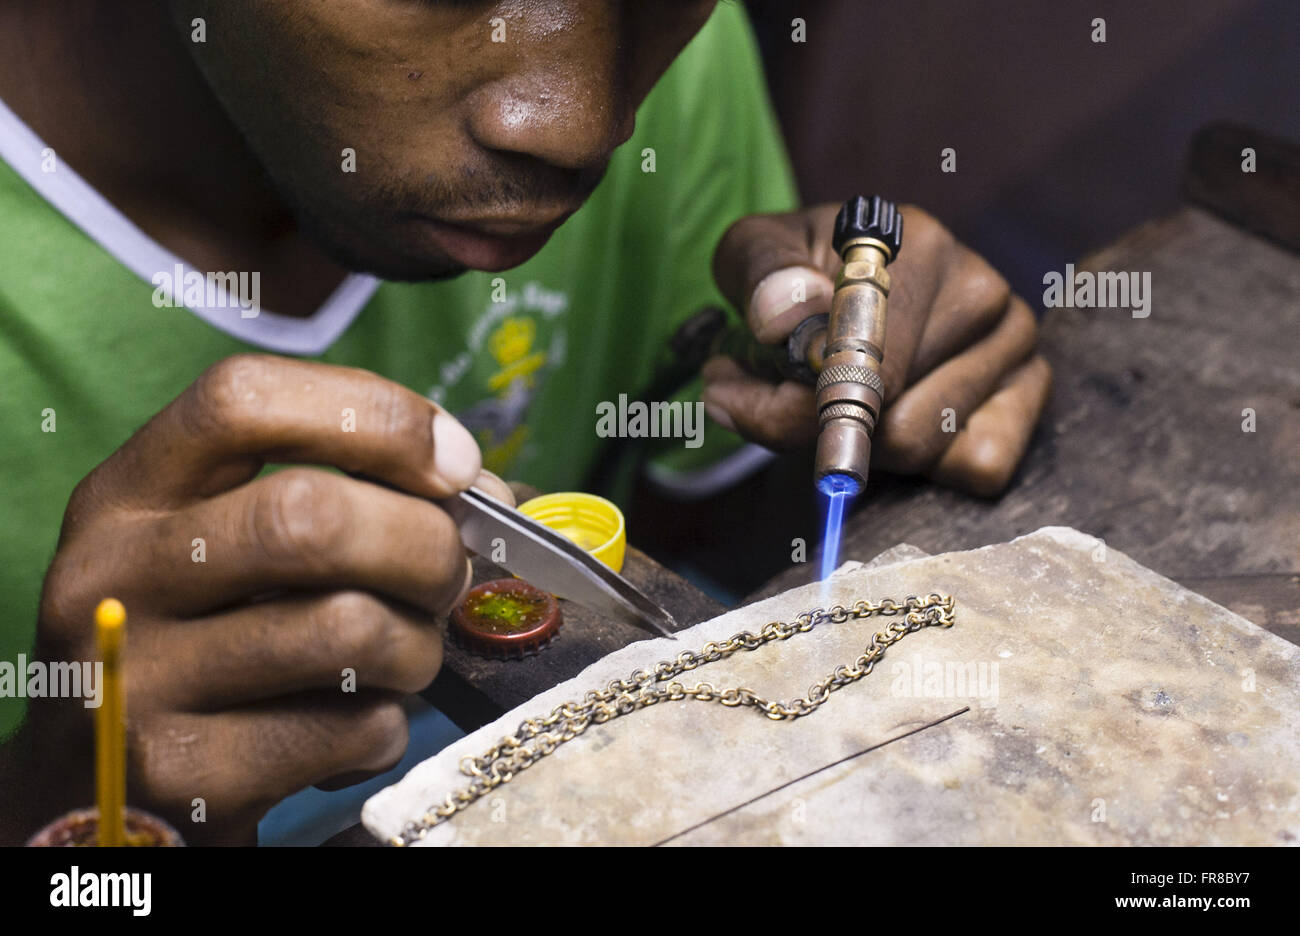 Goldsmith working handmade filigree jewelry in gold and silver - Stock Image